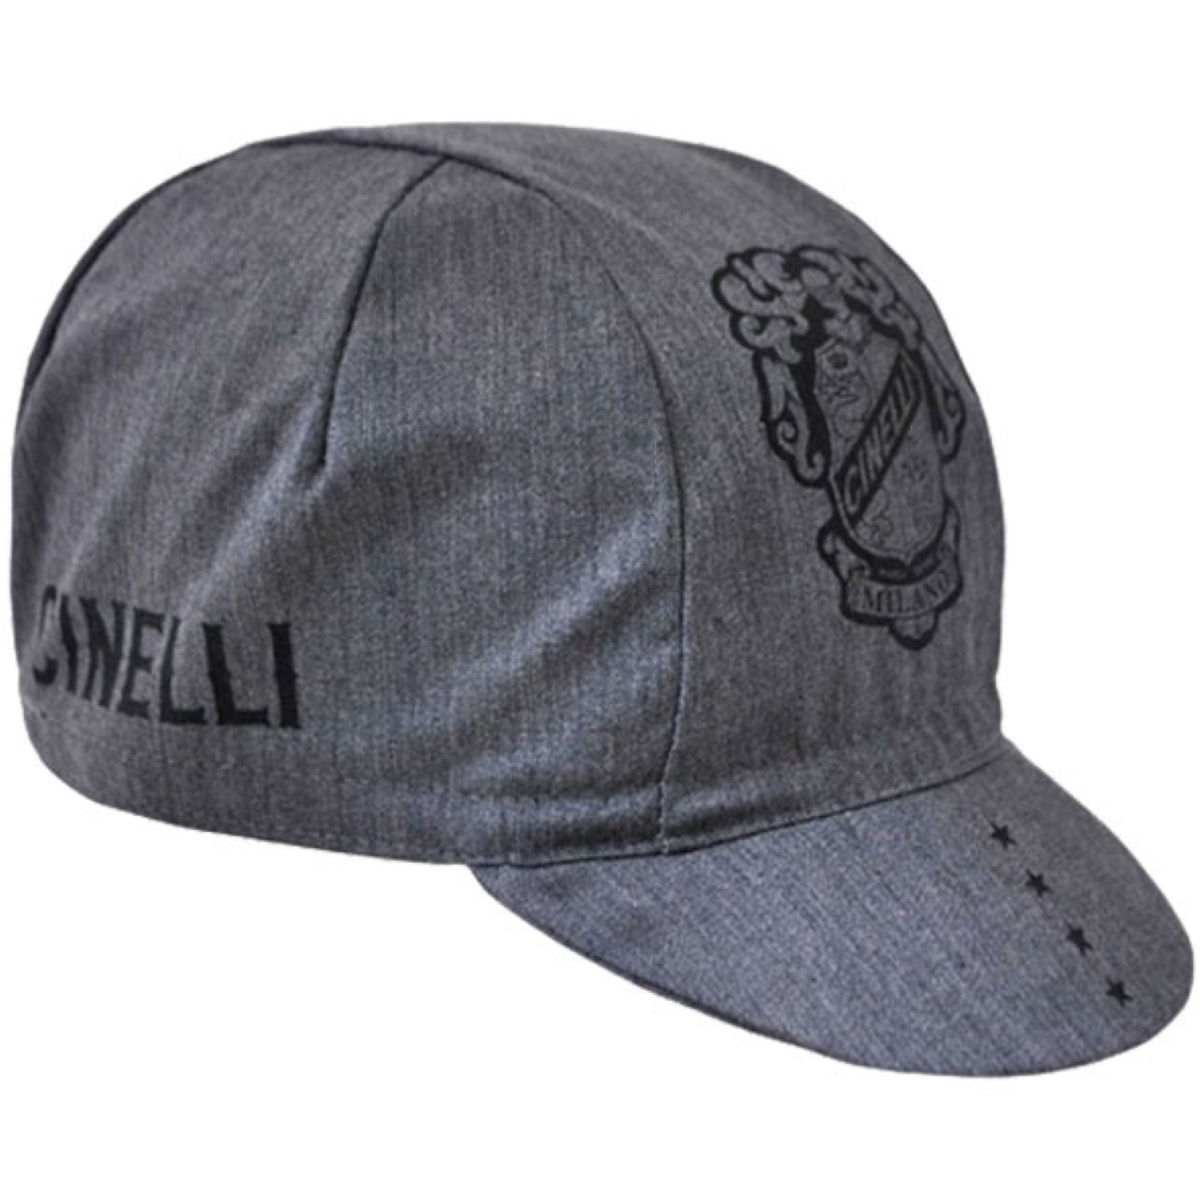 Cinelli Crest Cap Grey   Caps